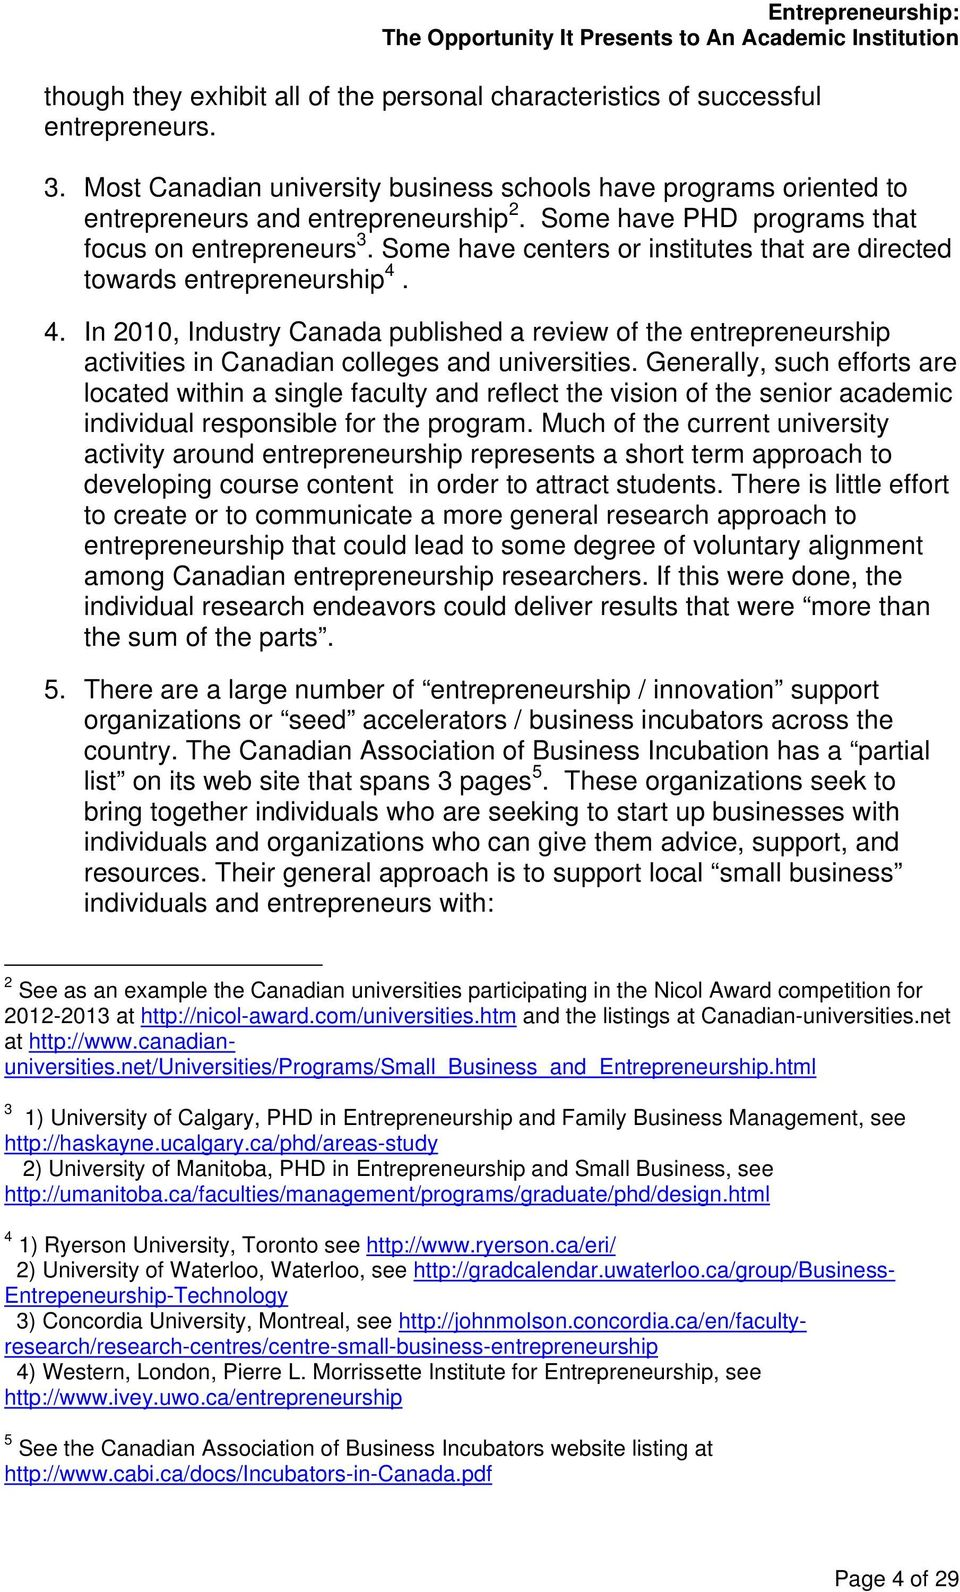 4. In 2010, Industry Canada published a review of the entrepreneurship activities in Canadian colleges and universities.